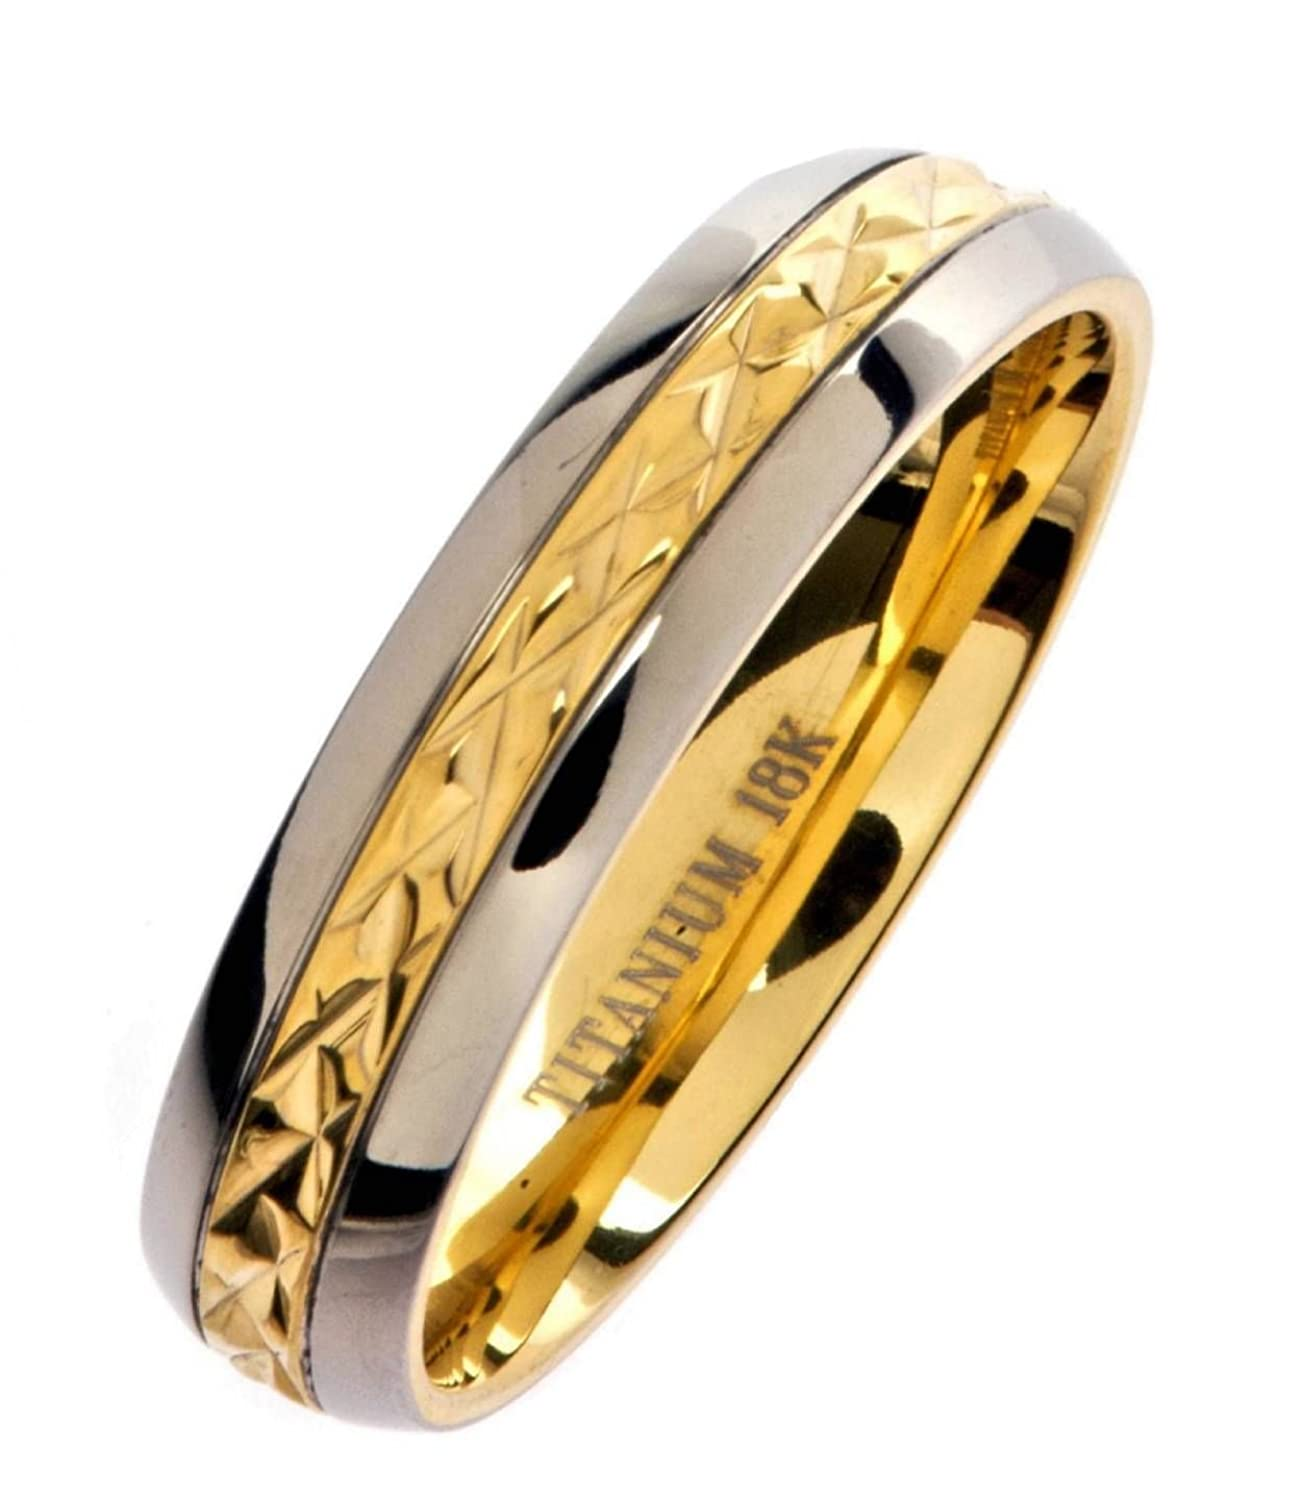 5mm 18K Gold Plated Wedding Ring Grade 5 Titanium Band Comfort Fit Size 9